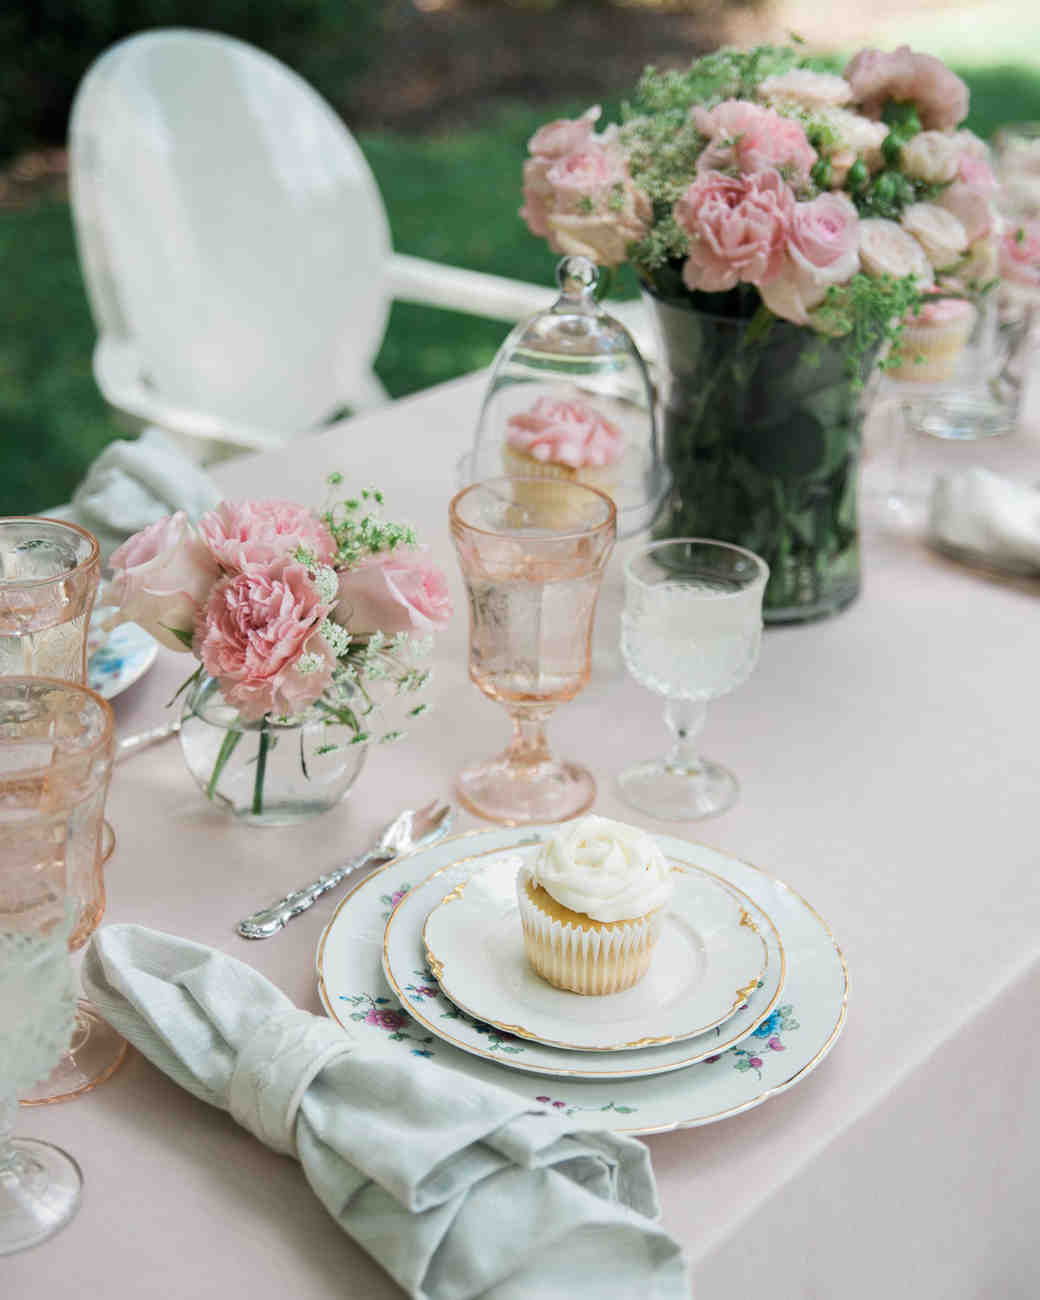 fashionable-hostess-bridal-shower-cupcake-table-scape-0416.jpg